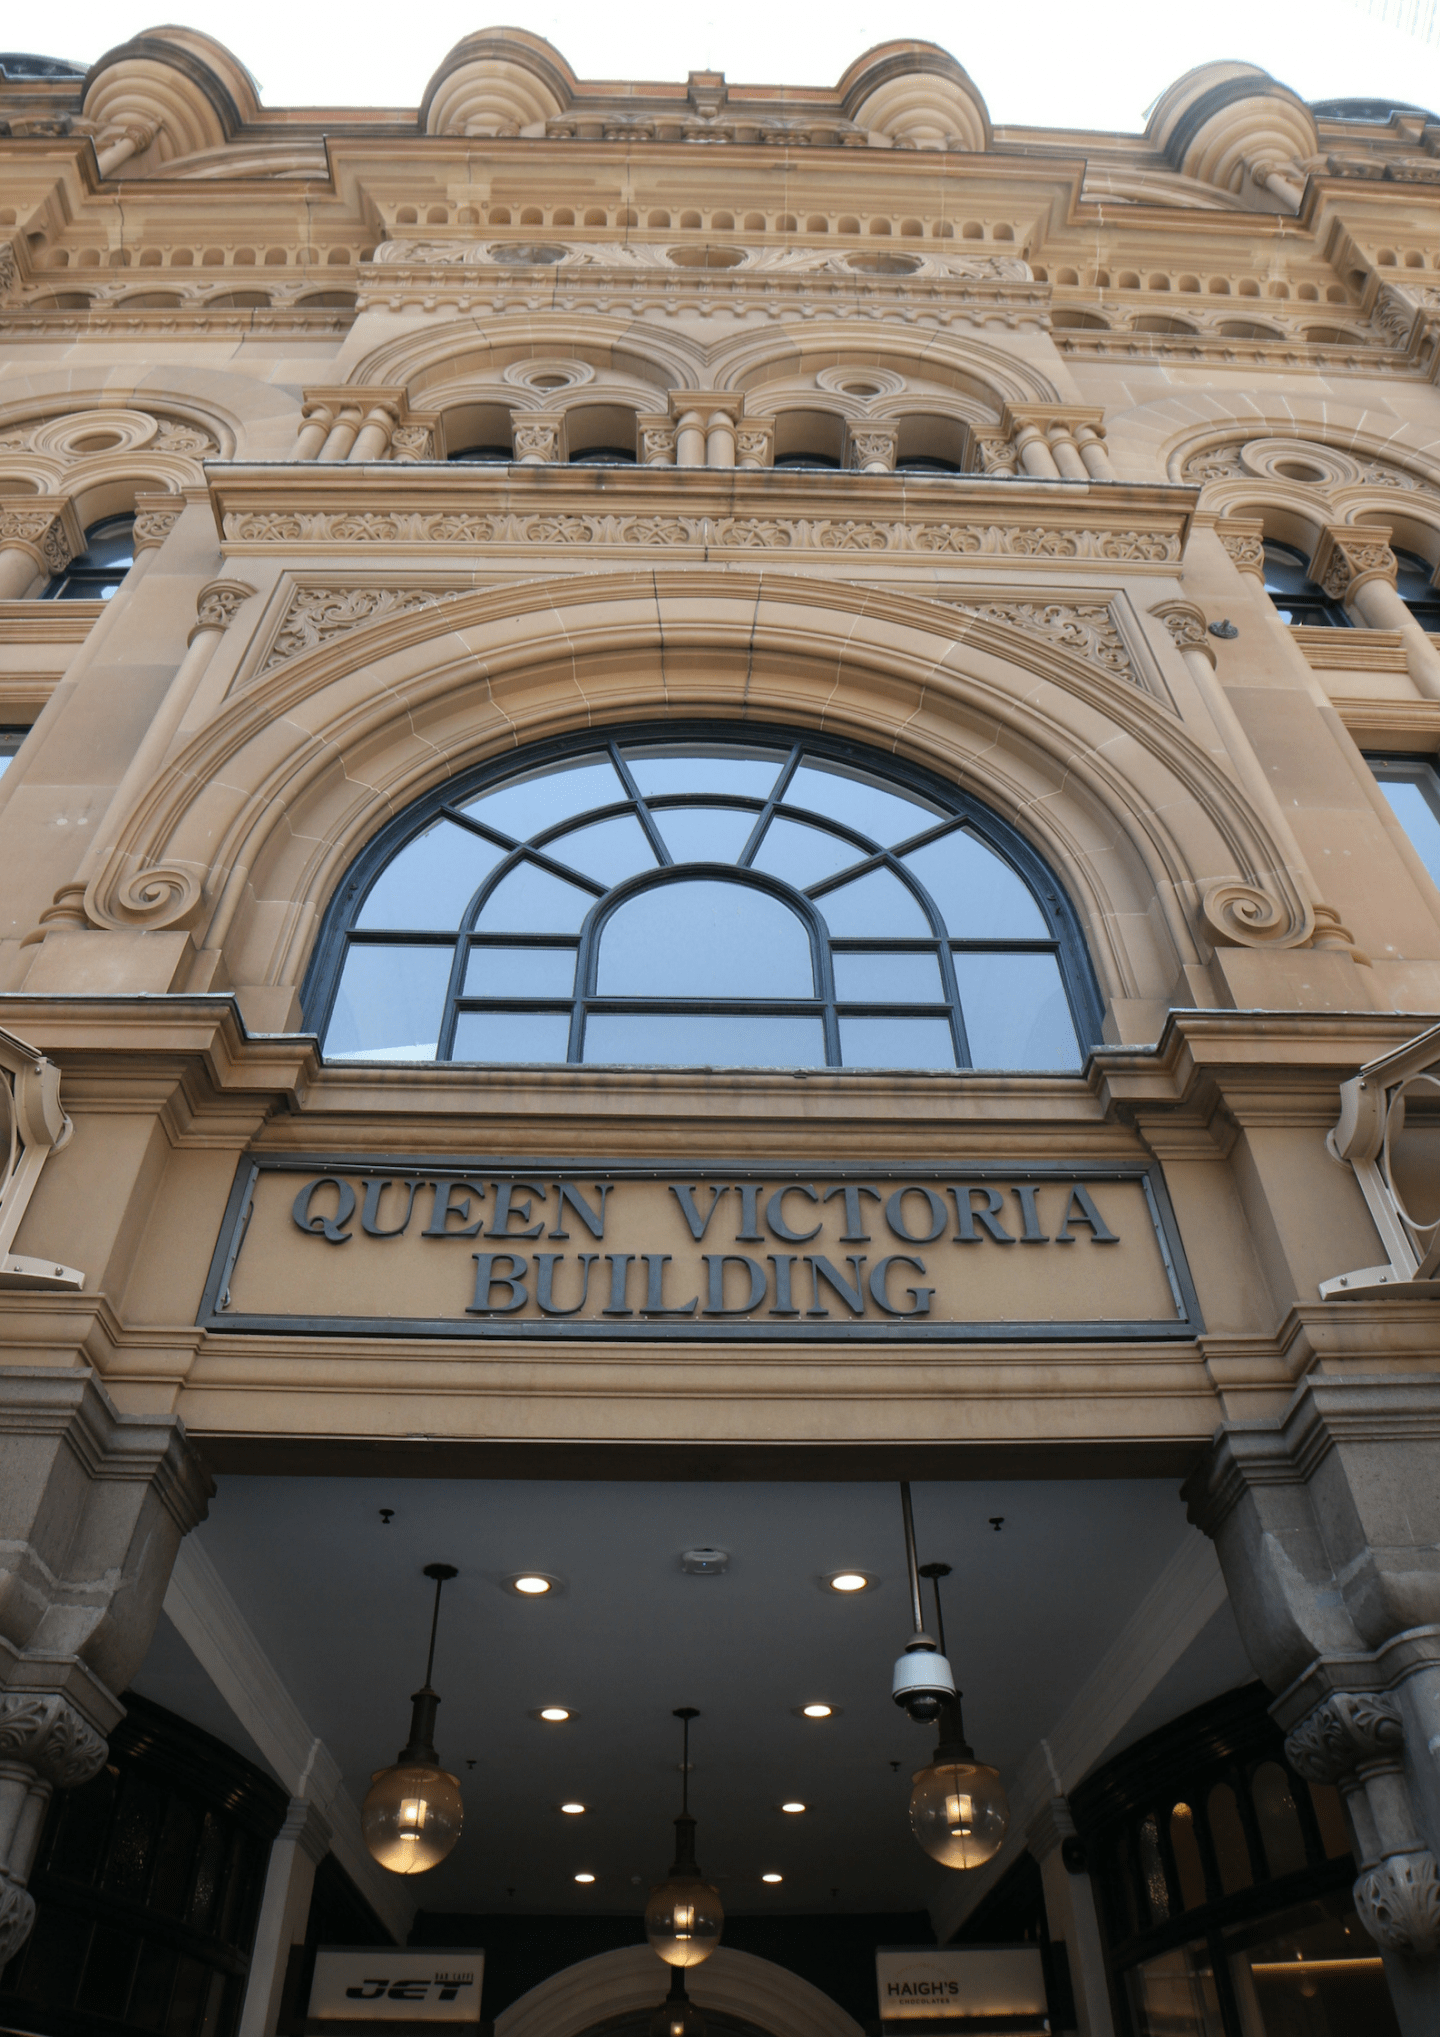 SYDNEY'S ICONIC BUILDINGS | QUEEN VICTORIA BUILDING